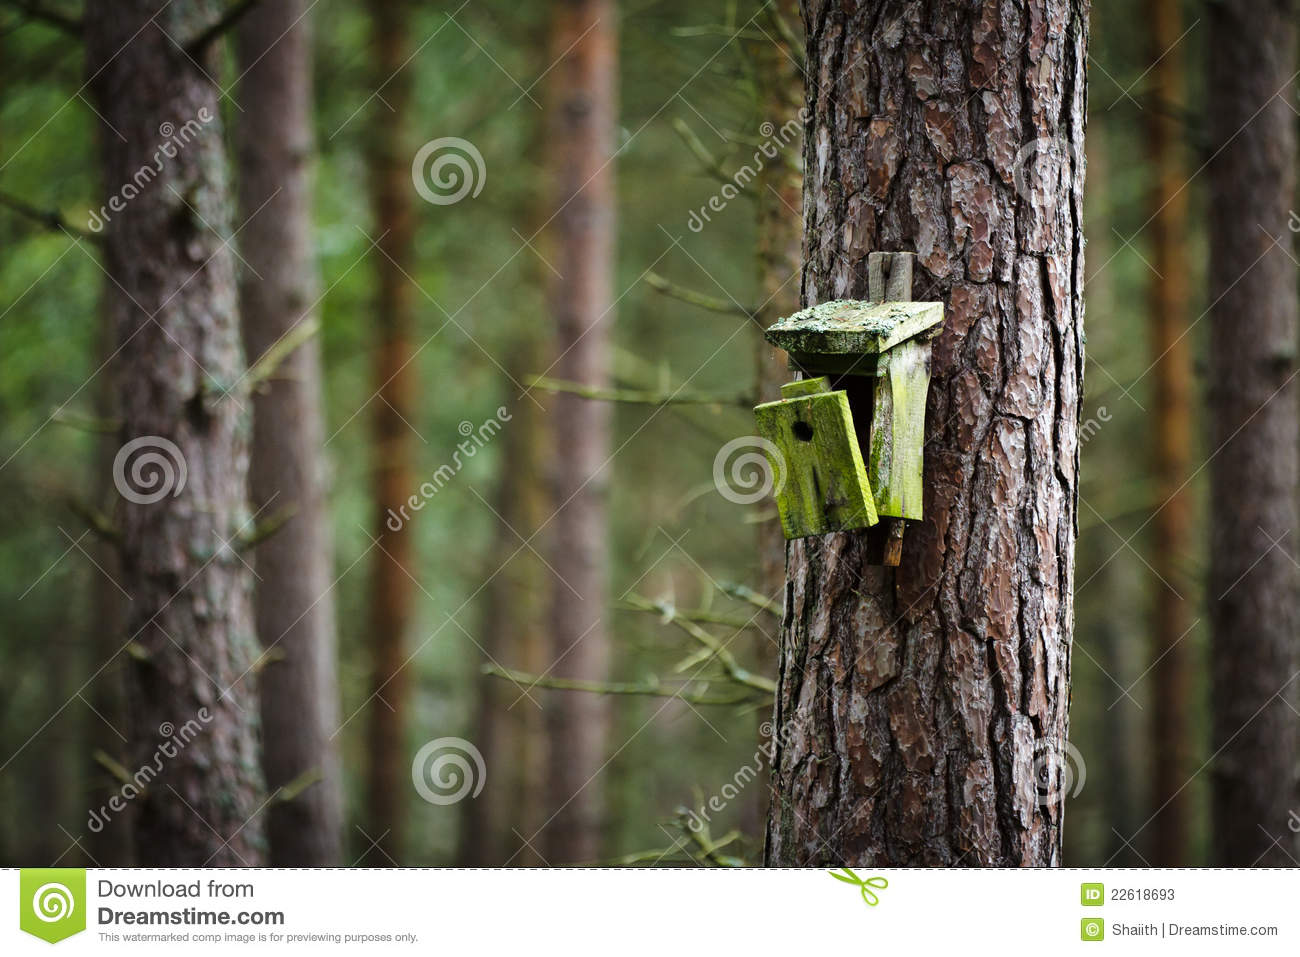 Old Broken Birdhouse In Forest Stock Photos - Image: 22618693